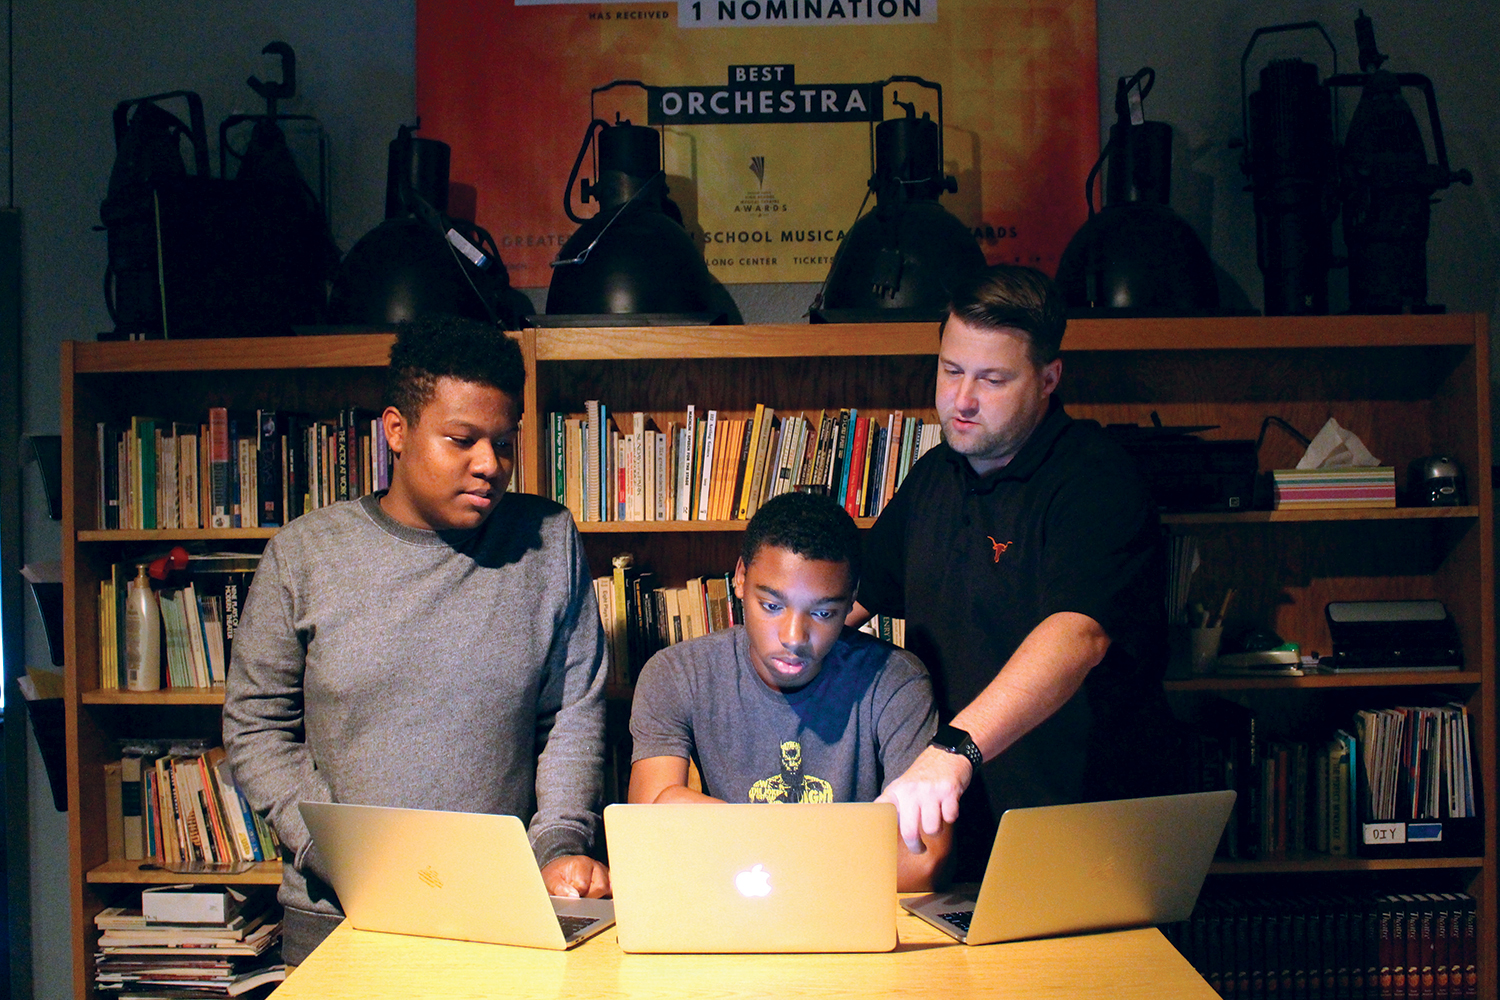 Junior Frankie Spense, freshman Chase Adkins and teacher Brad Distlehorst use new laptops to prepare for the play. It will include projection mapping software